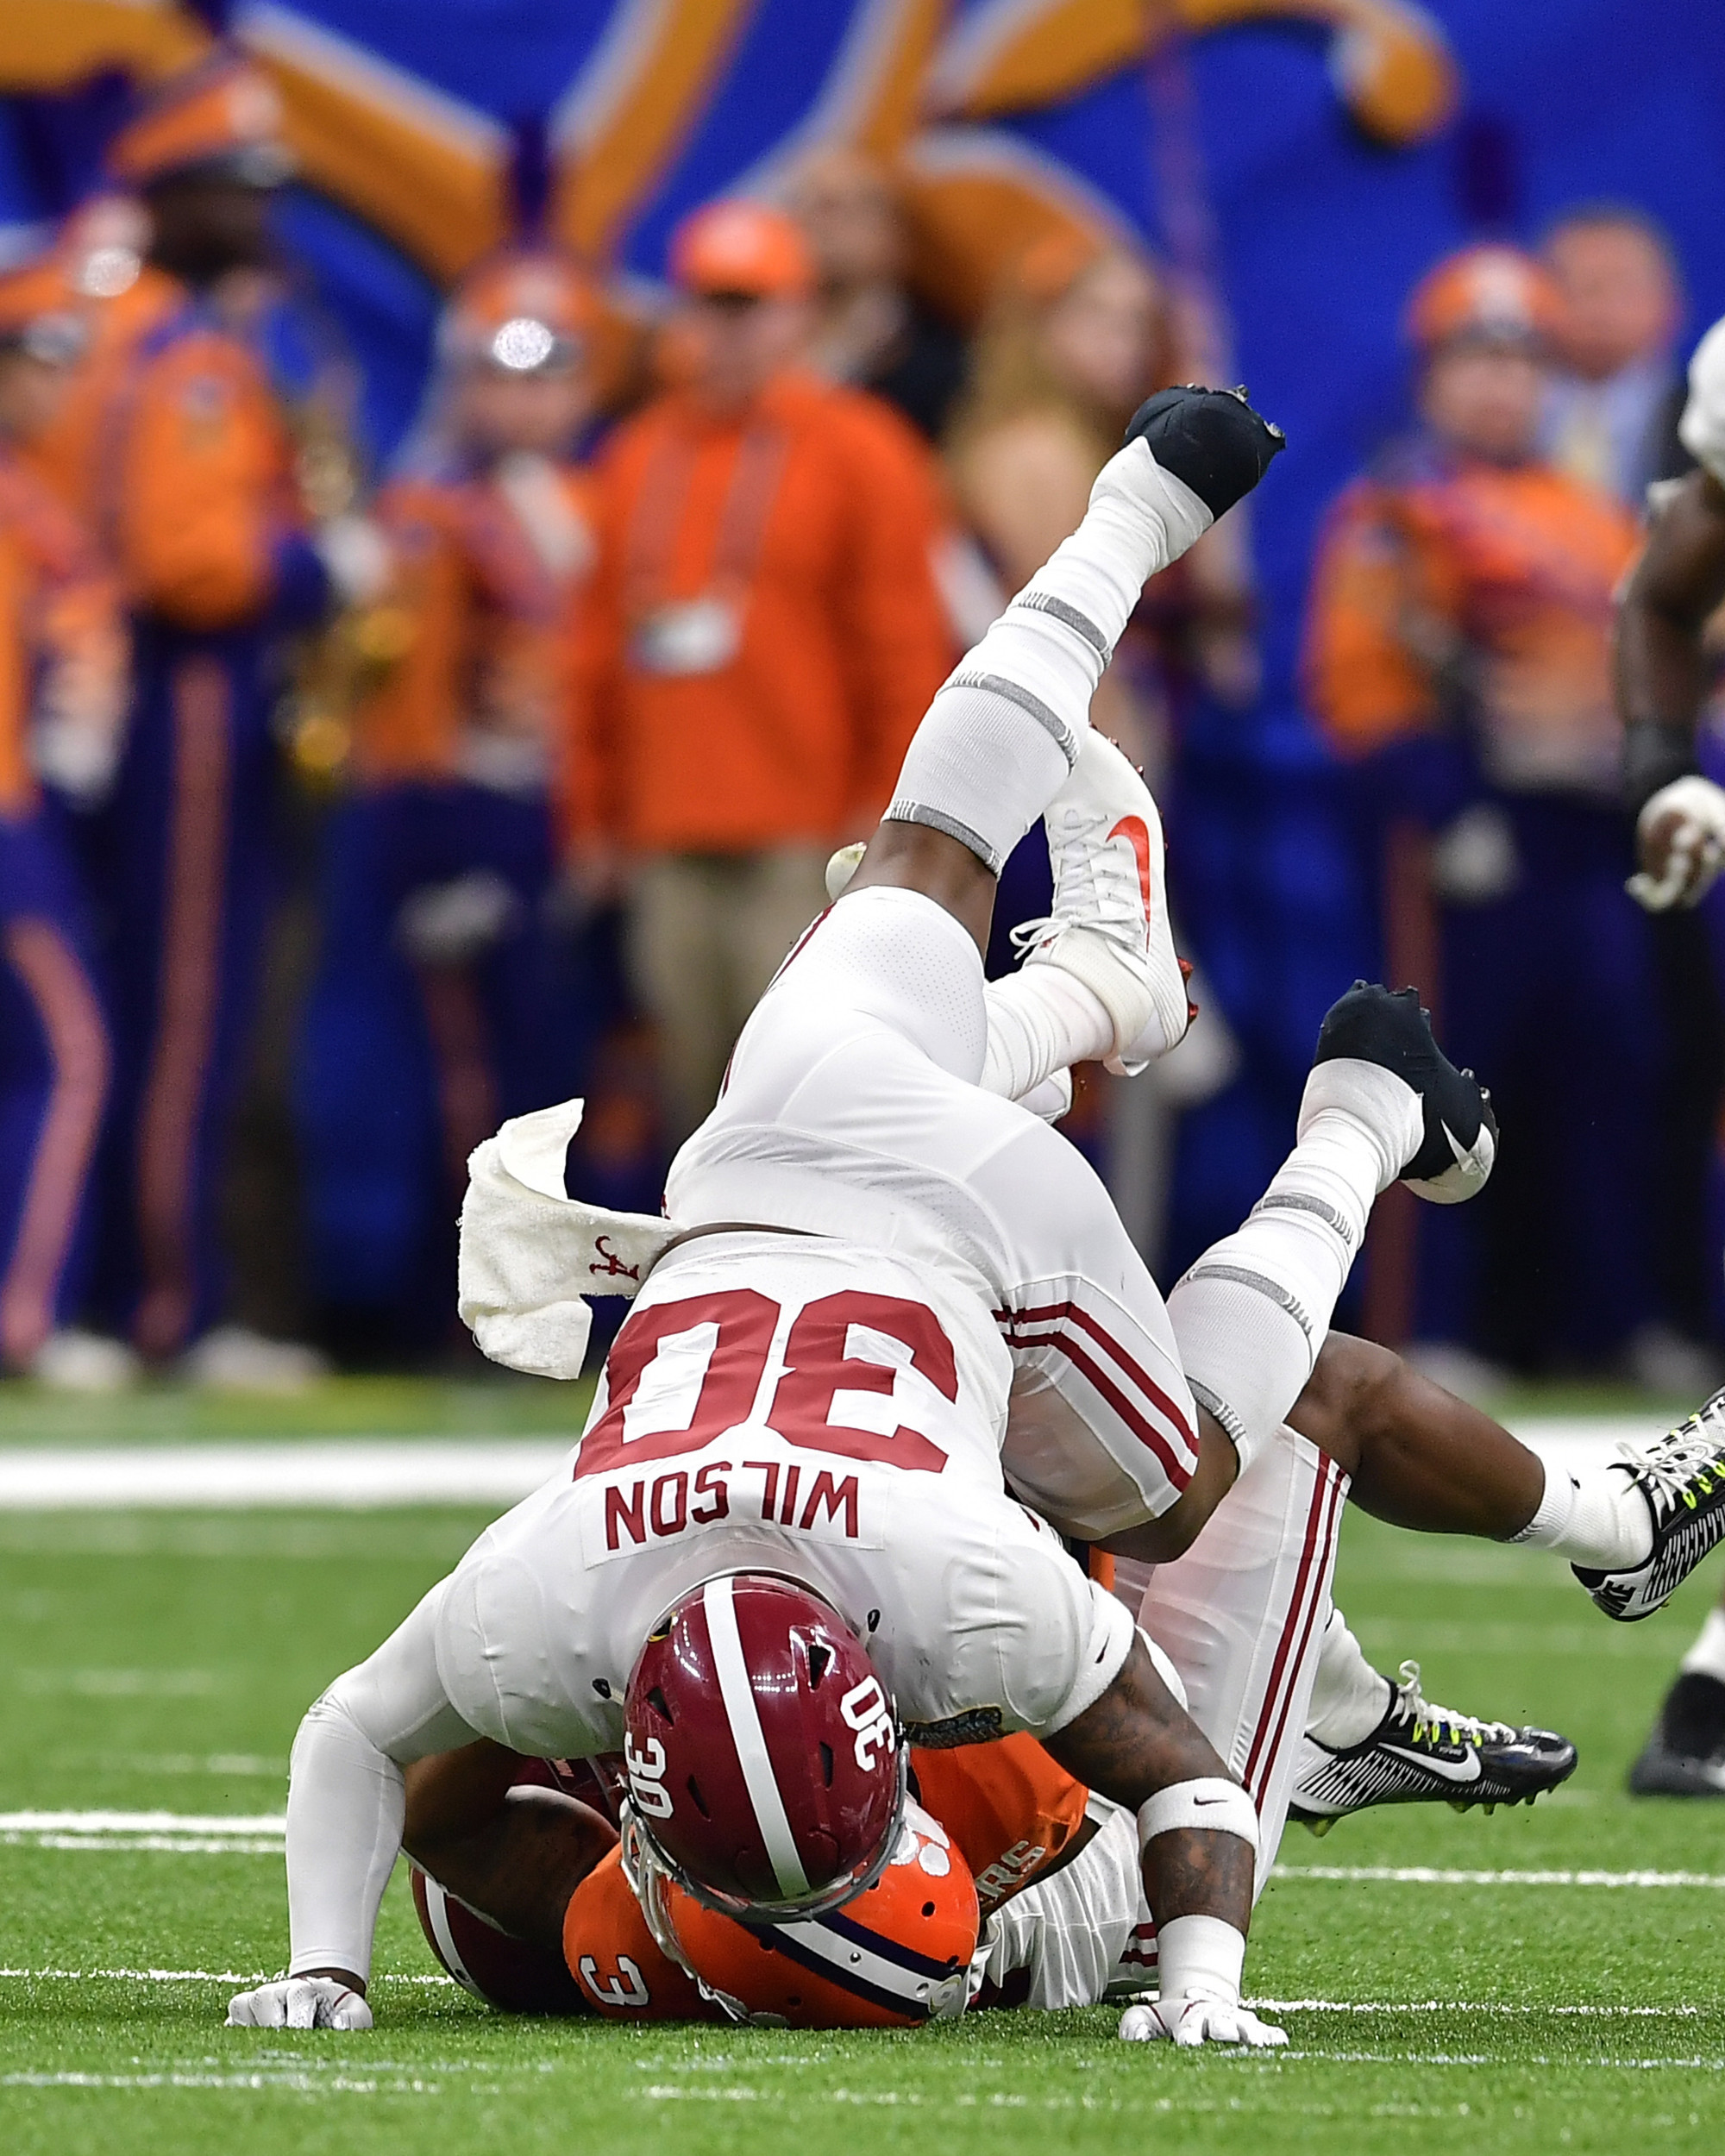 Alabama Crimson Tide linebacker Mack Wilson (30) with a stop in the first half of the 2018 AllState Sugar Bowl on Jan. 1, 2018, at the Mercedes-Benz SuperDome in New Orleans, La. Alabama won the game 24-6. (Photo by Lee Walls)